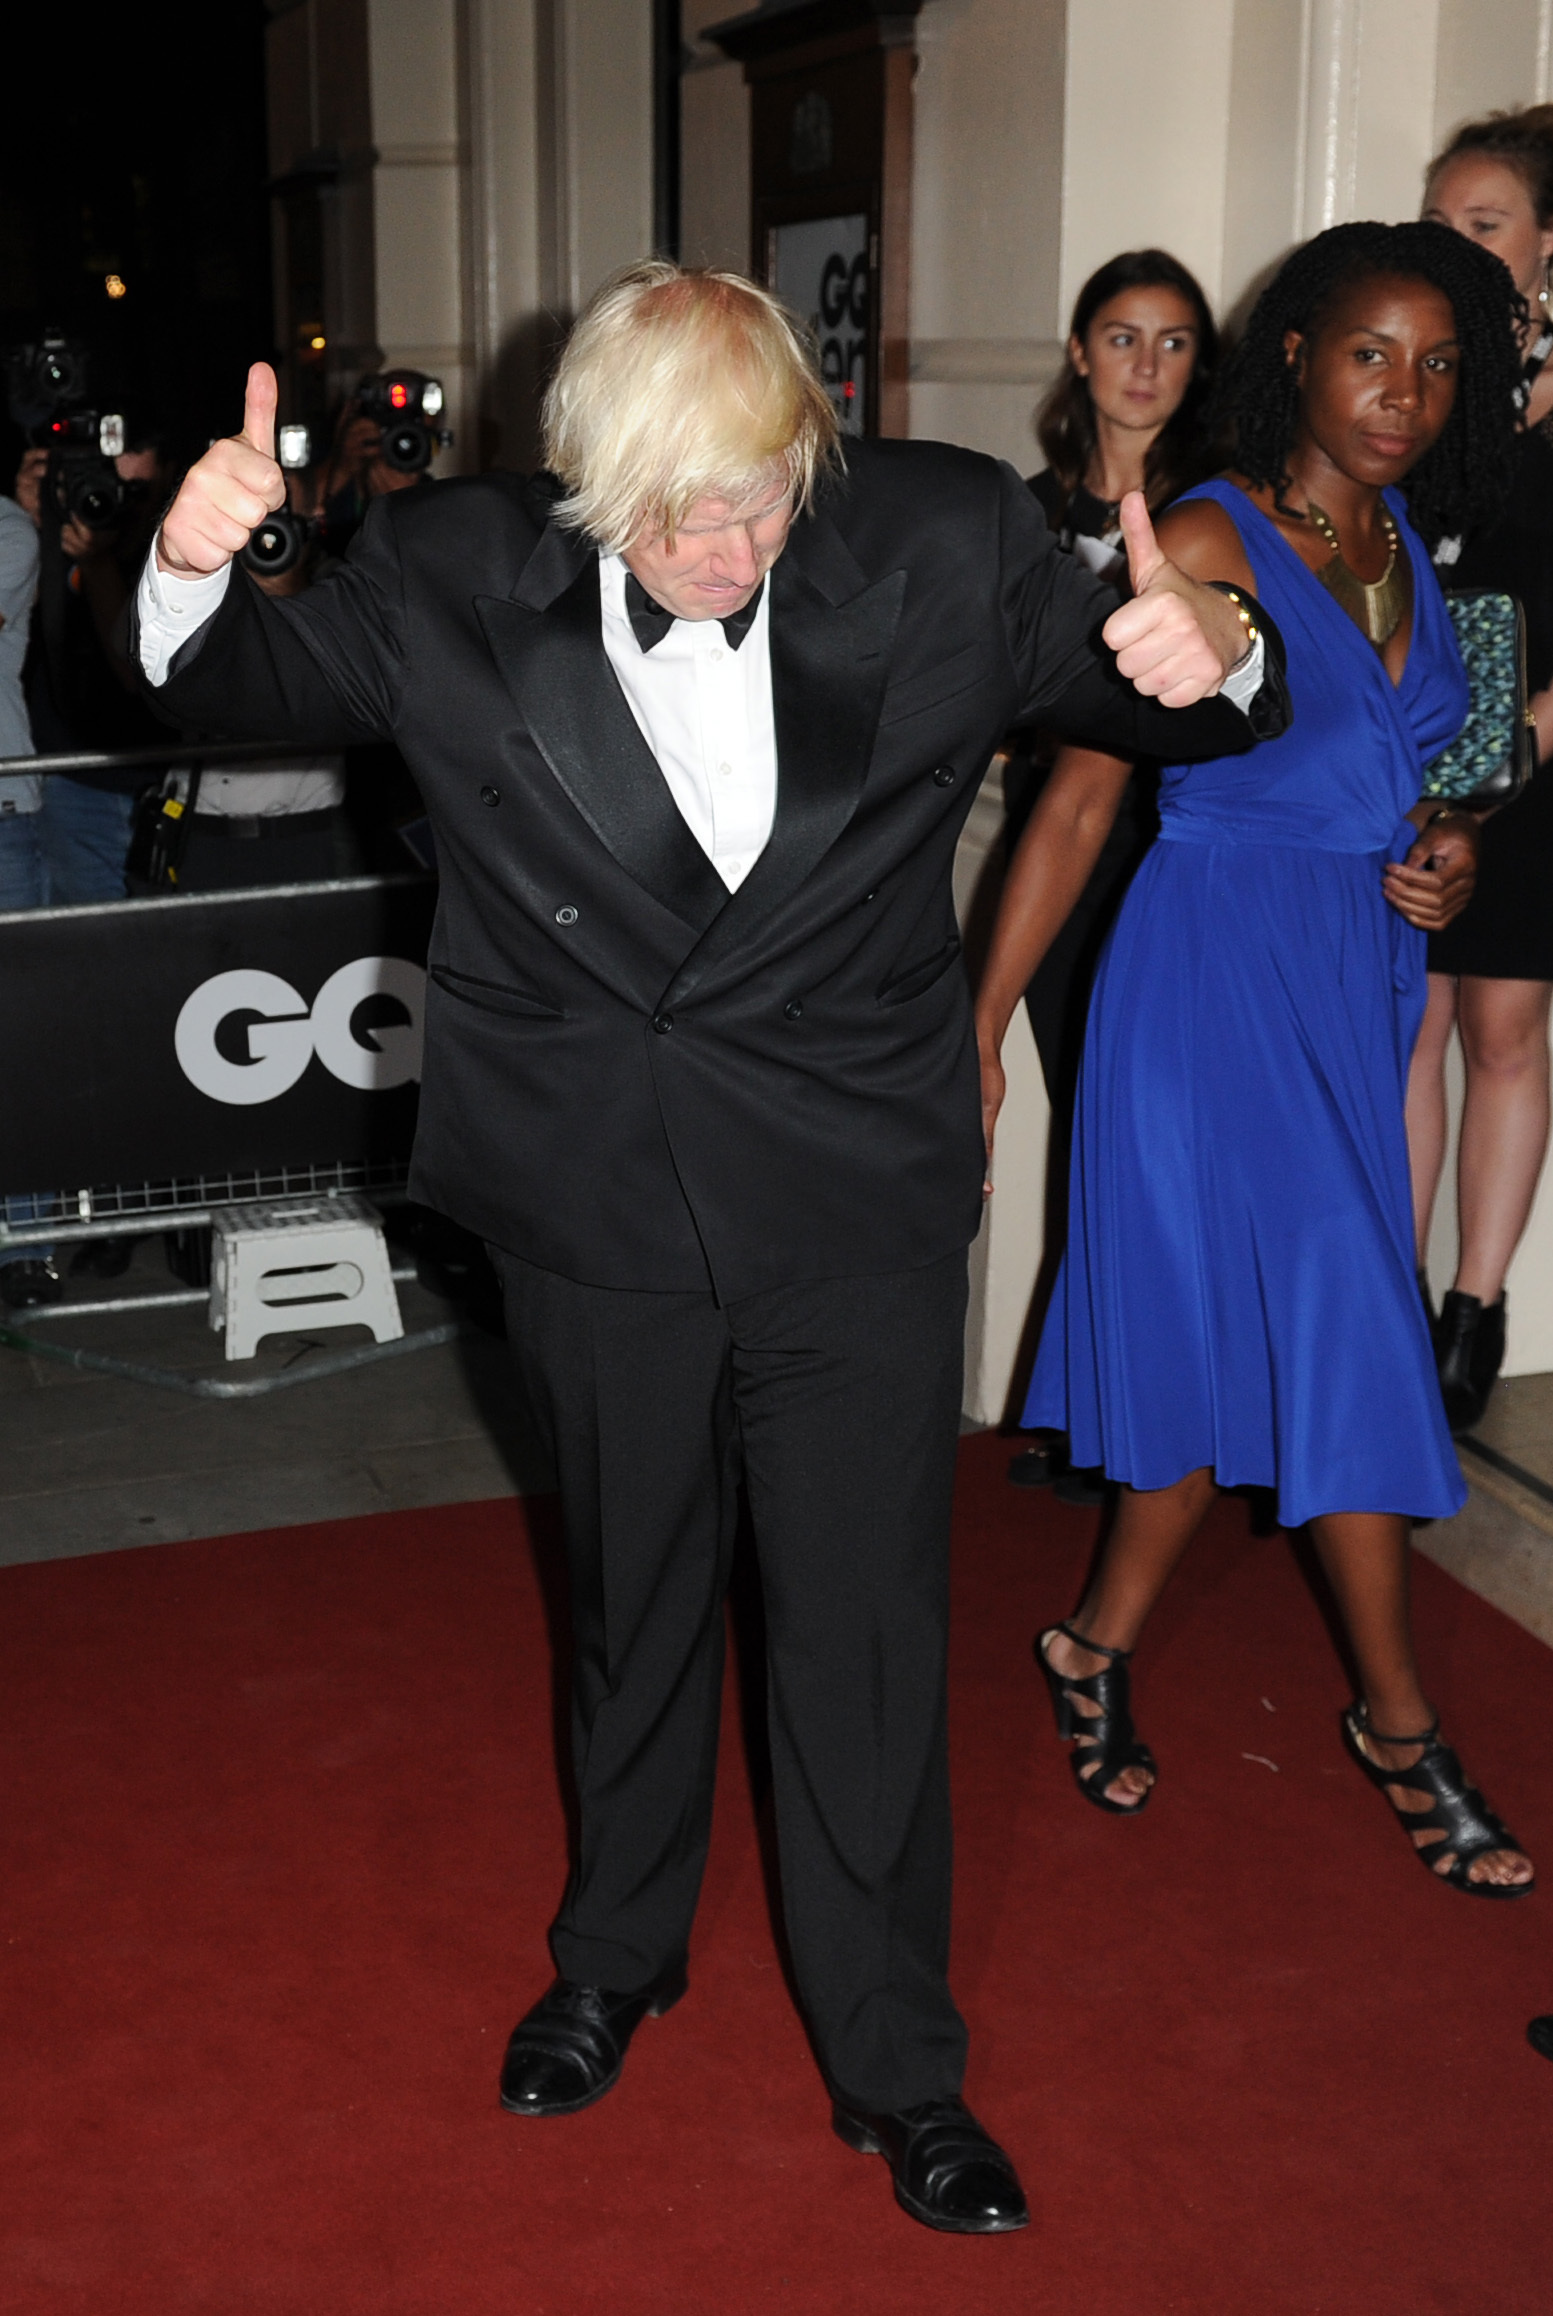 Boris Johnson attends the GQ Men of the Year Awards in association with Hugo Boss at the Royal Opera House, London.